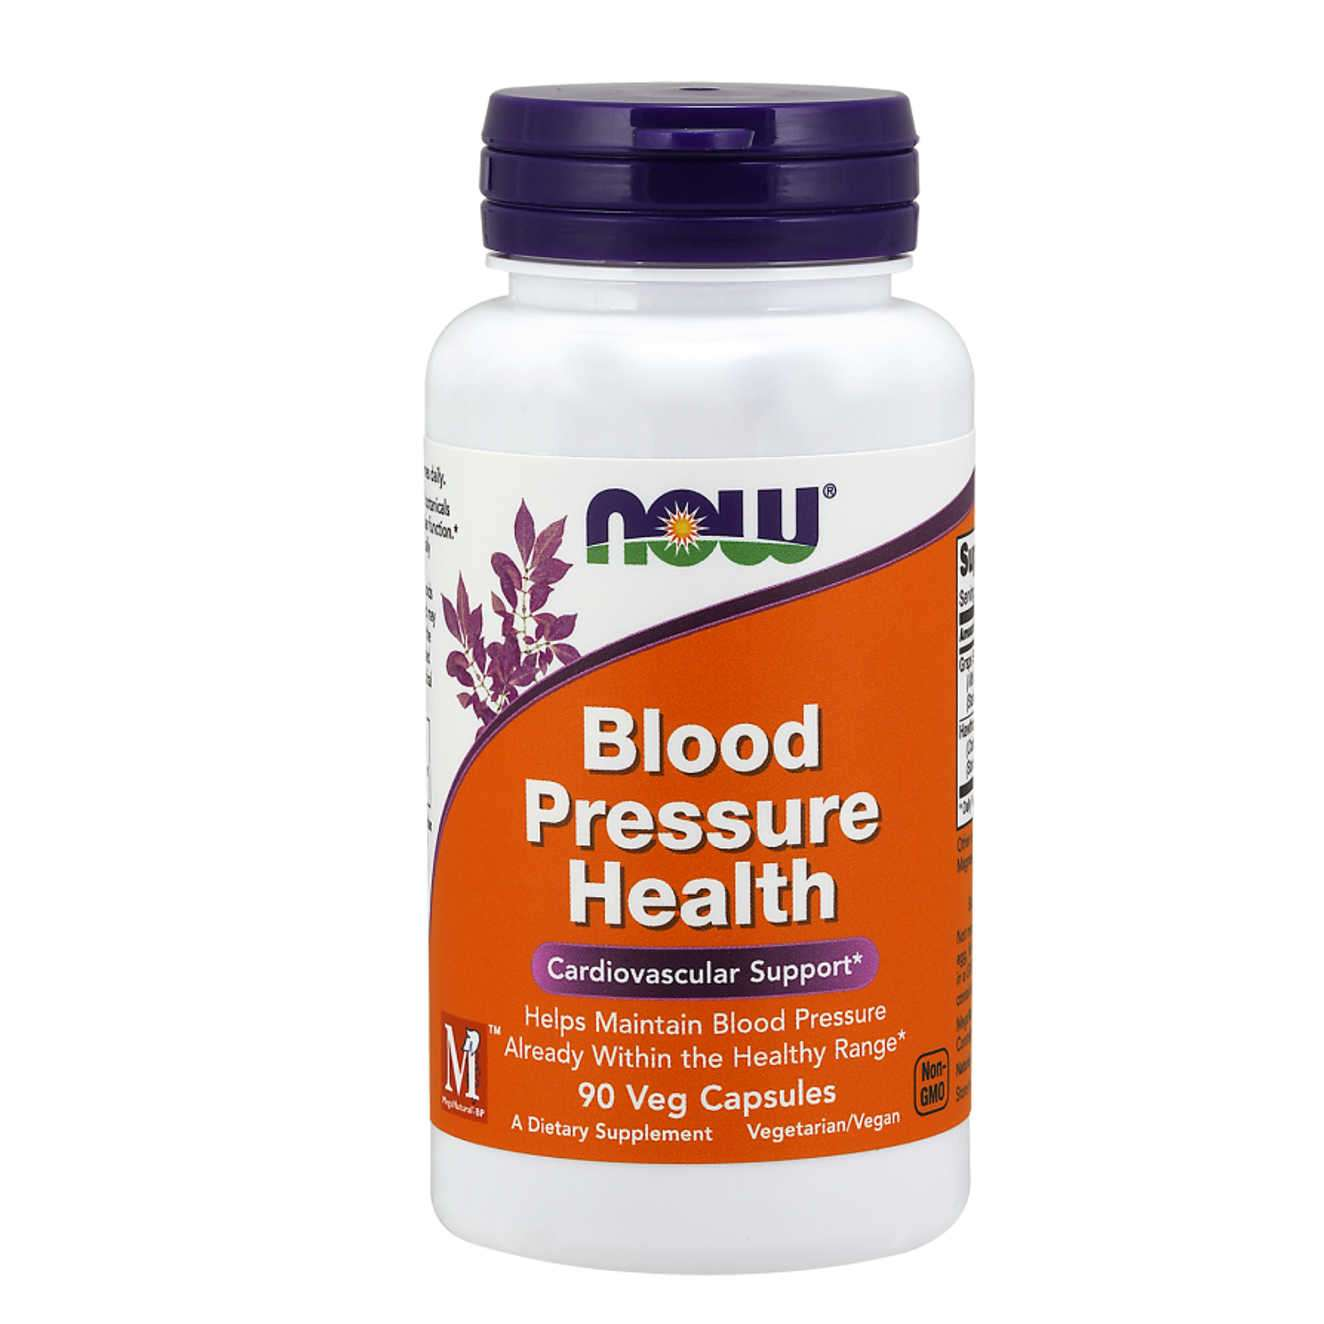 BLOOD PRESSURE HEALTH - 90 veg caps